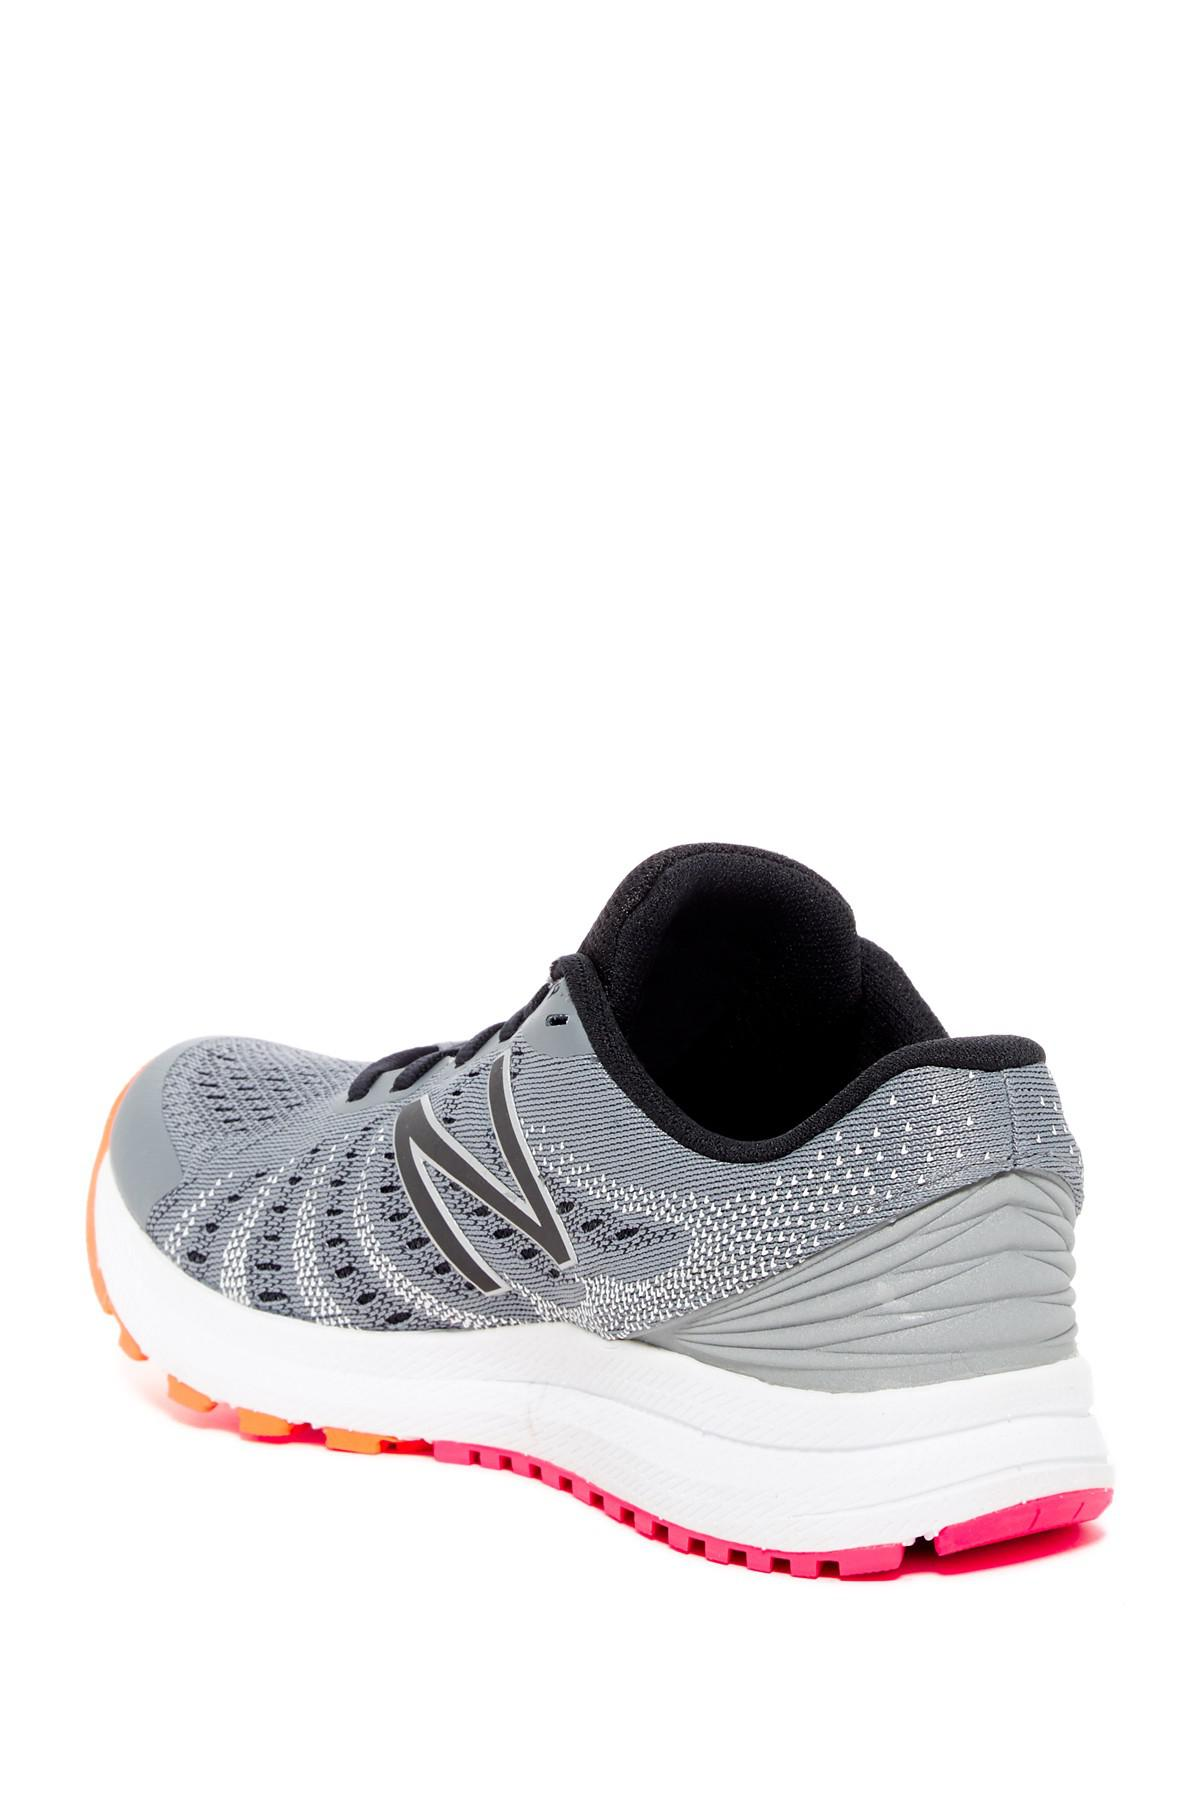 New Balance Q317 v3 Running Sneaker - Wide Width Available 8ycUsyA